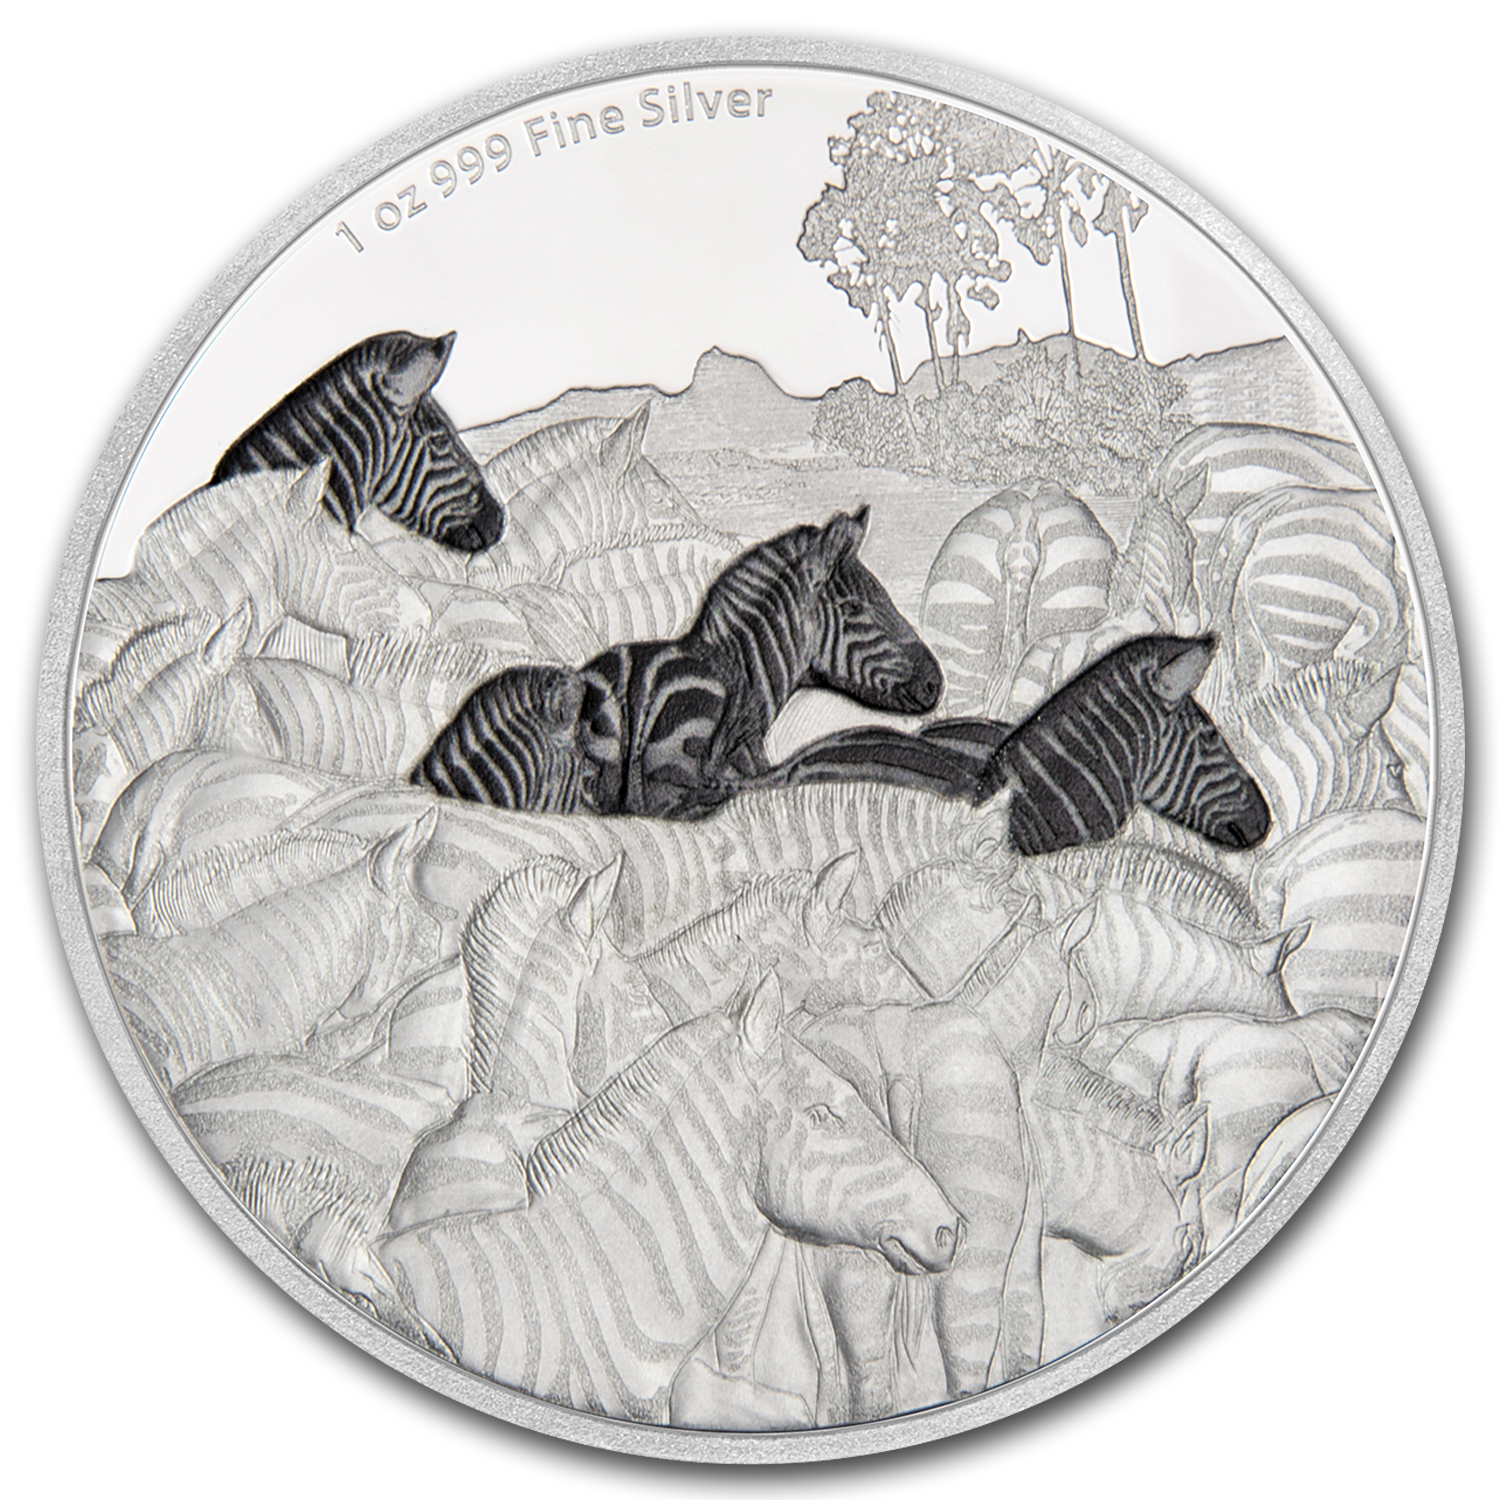 2016 Niue 1 oz Silver Great Migrations Zebra